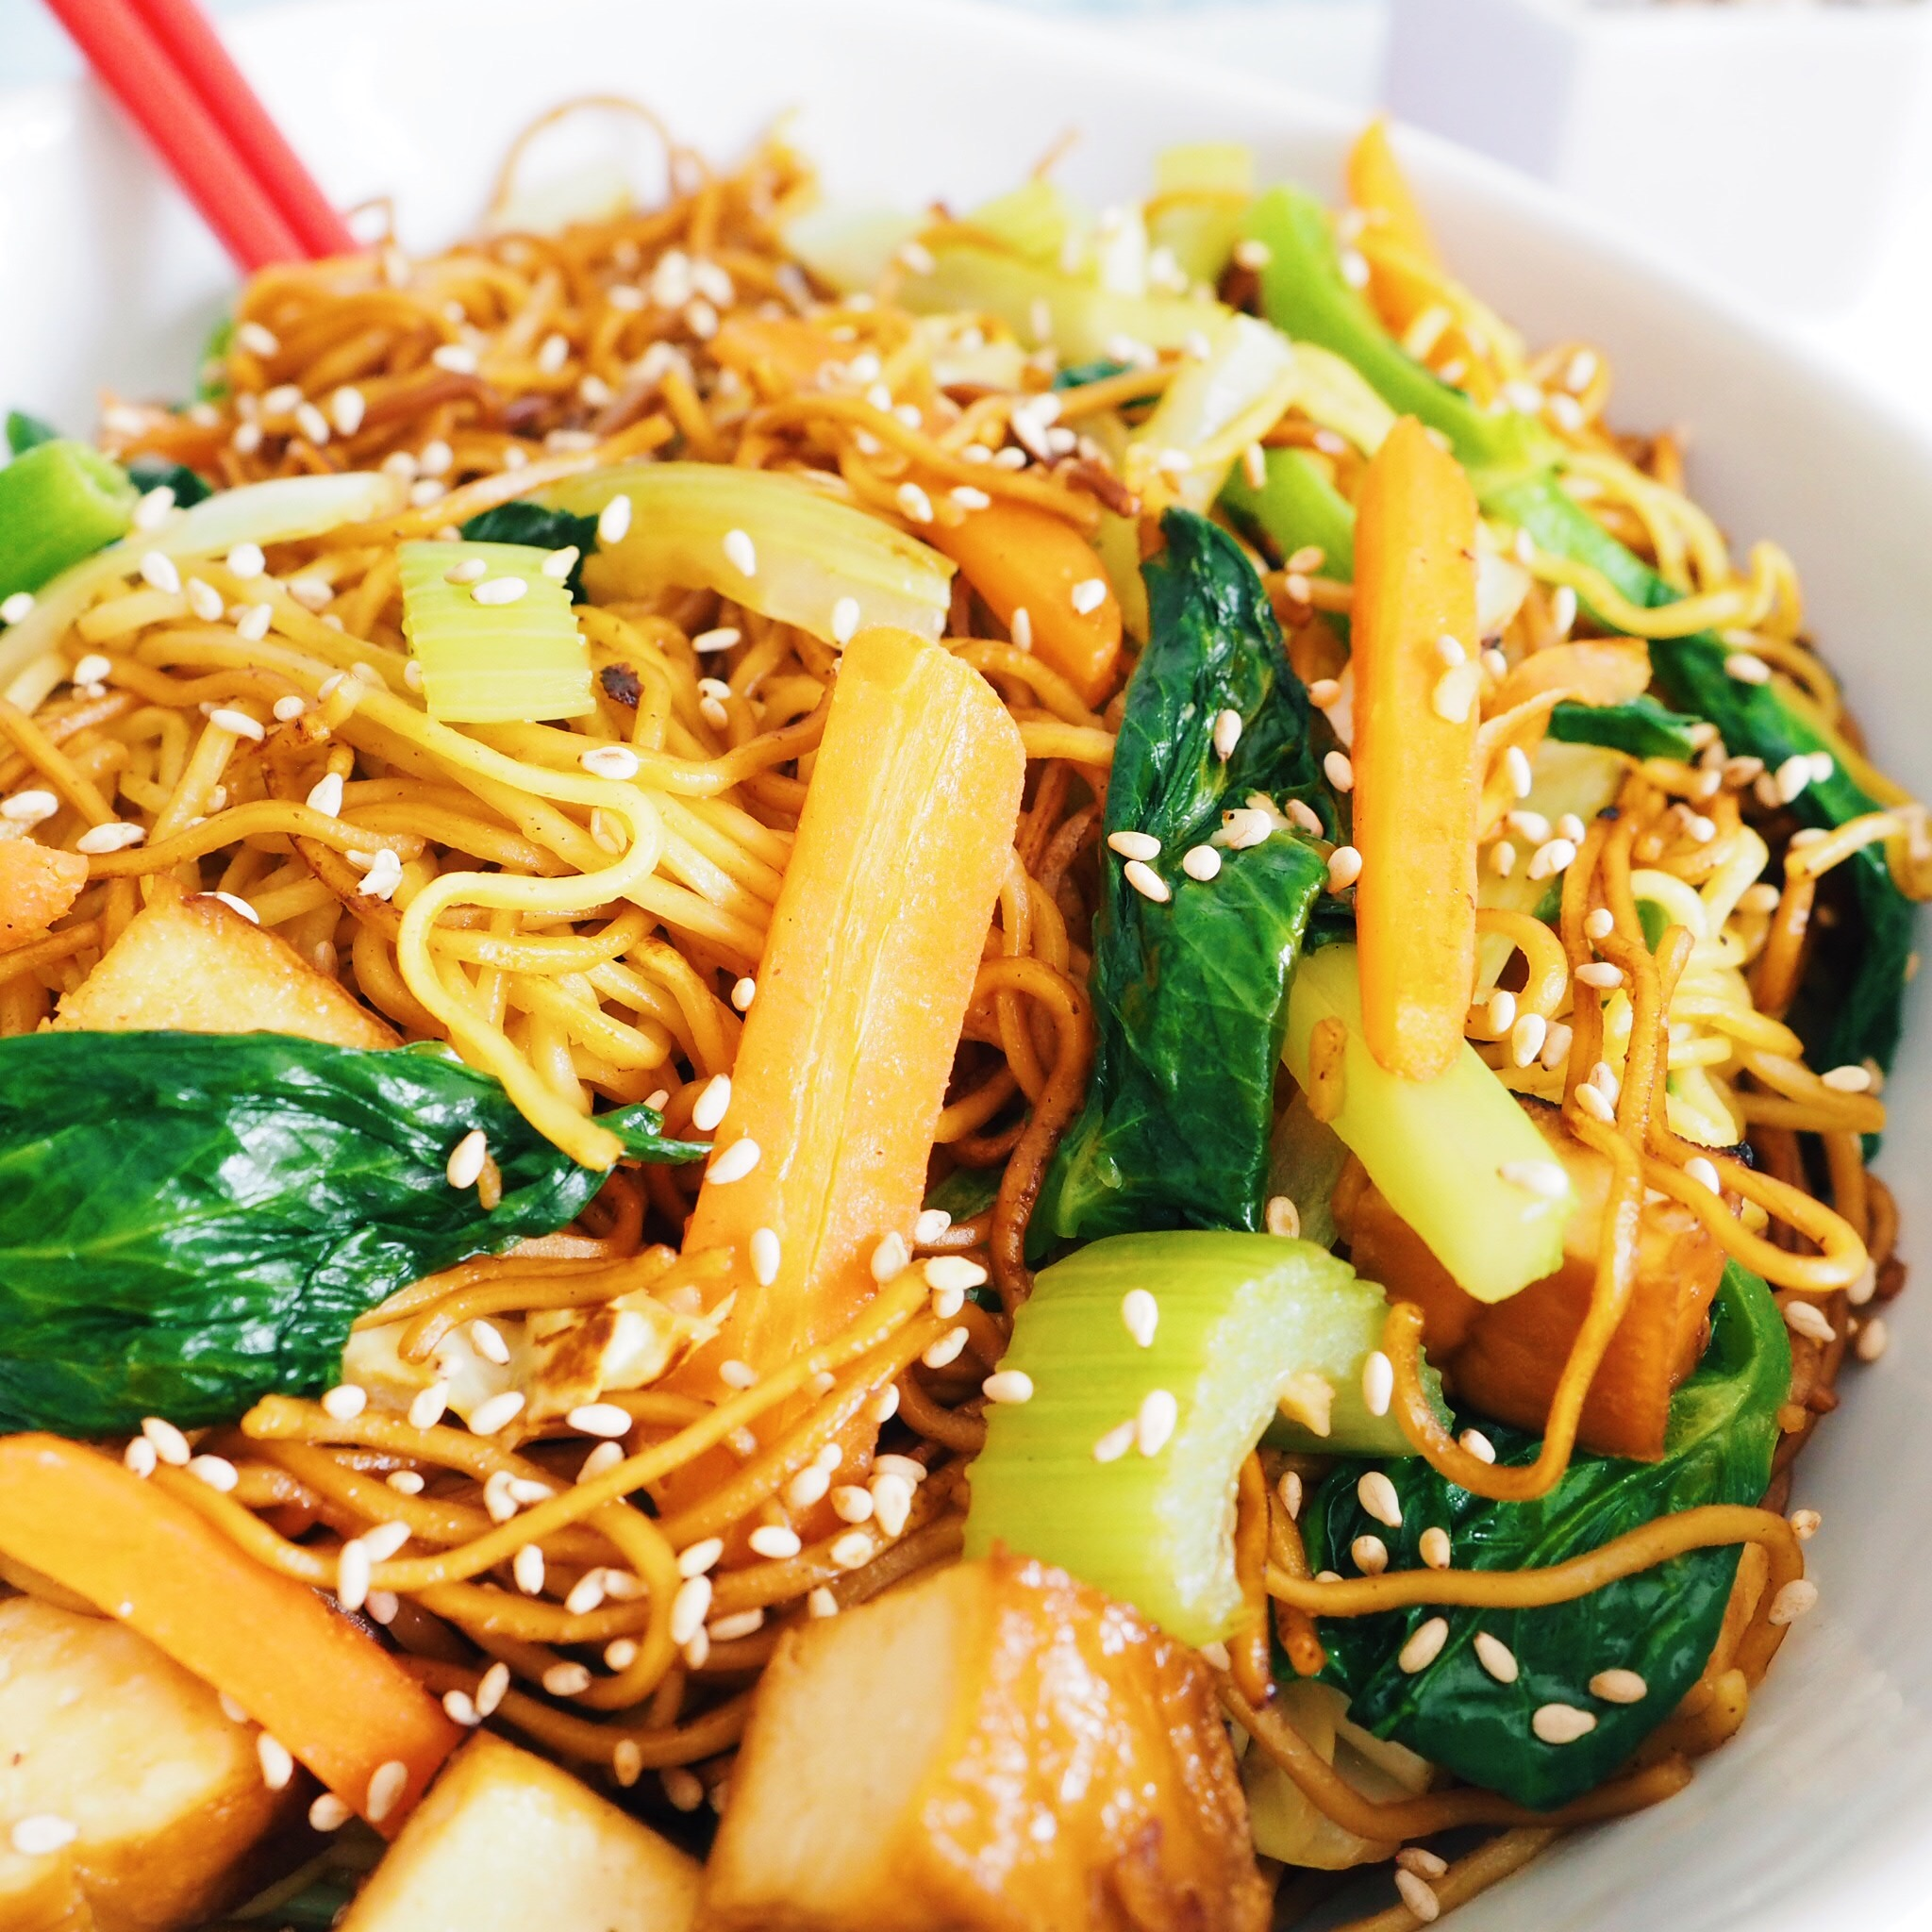 Tofu Vegetable Chow Mein. Delicious, healthy, vegetable packed noodles with a soy-based sauce. Easy to make in less 30 minutes. Perfect for dinner or lunch.